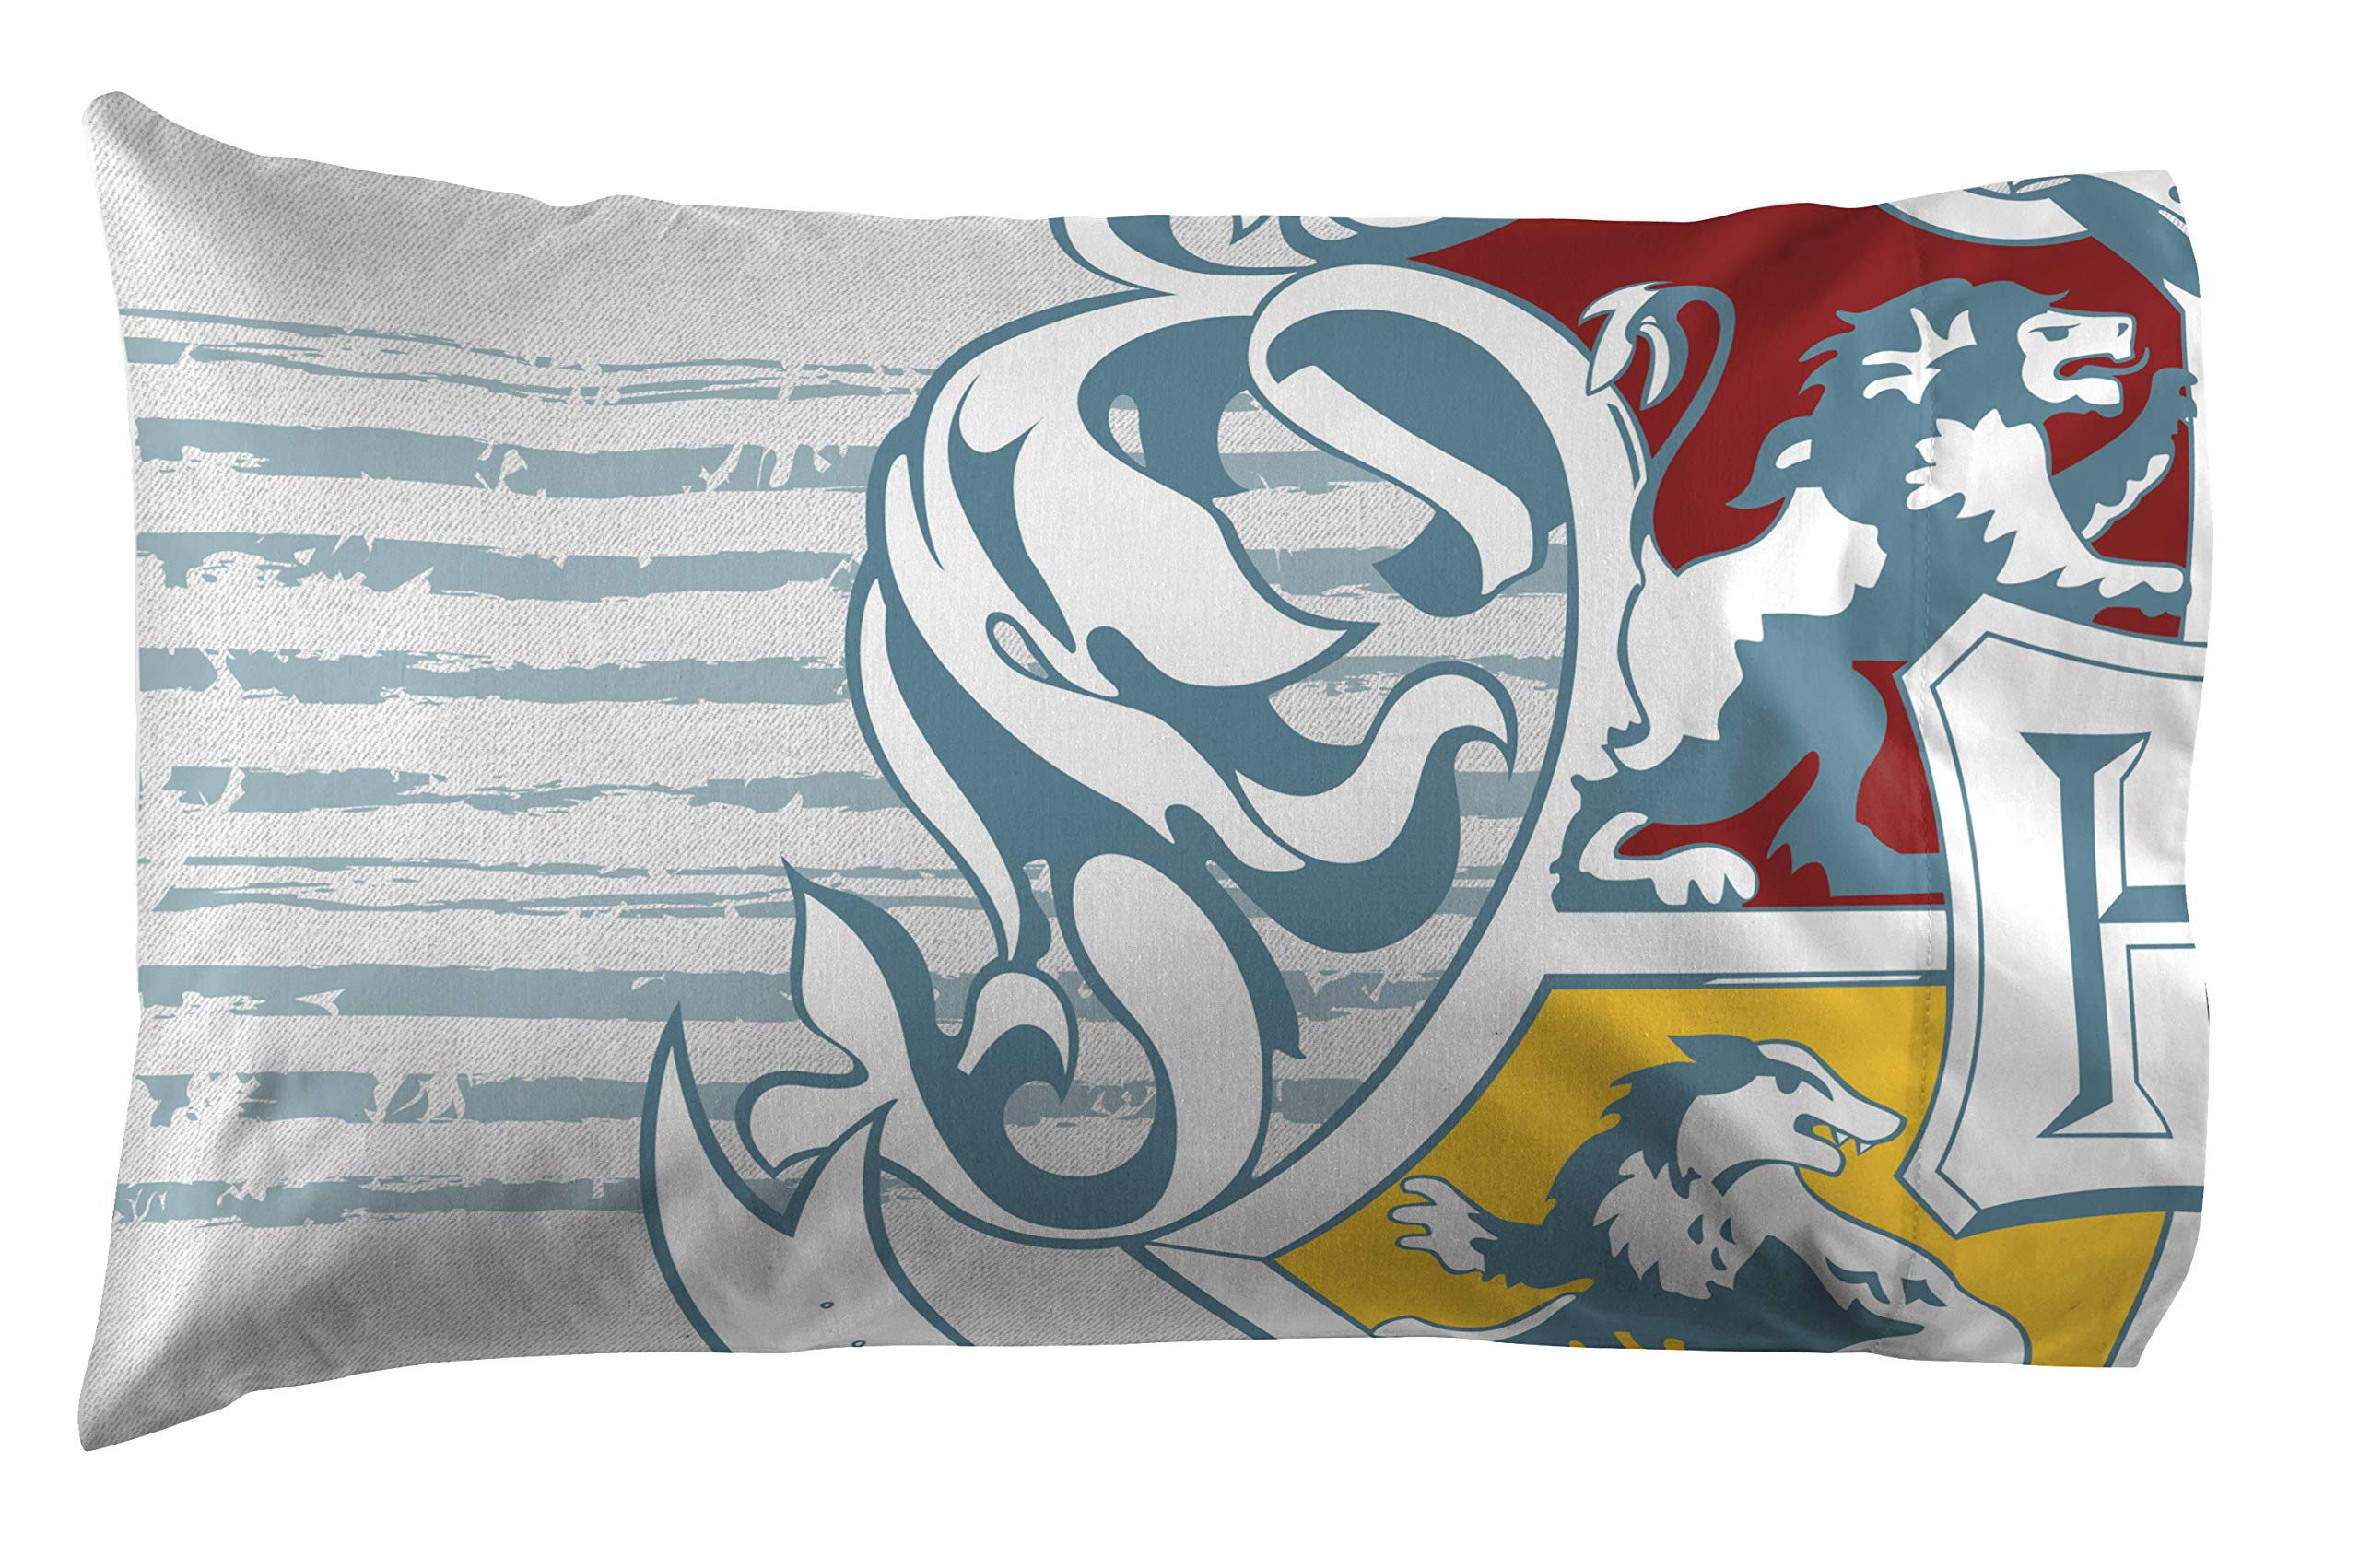 Jay Franco Harry Potter Wizardry 4 Piece Twin Bed Set - Includes Reversible Comforter & Sheet Set - Super Soft Fade Resistant Polyester Bedding (Official Warner Brothers Product) by Jay Franco (Image #5)